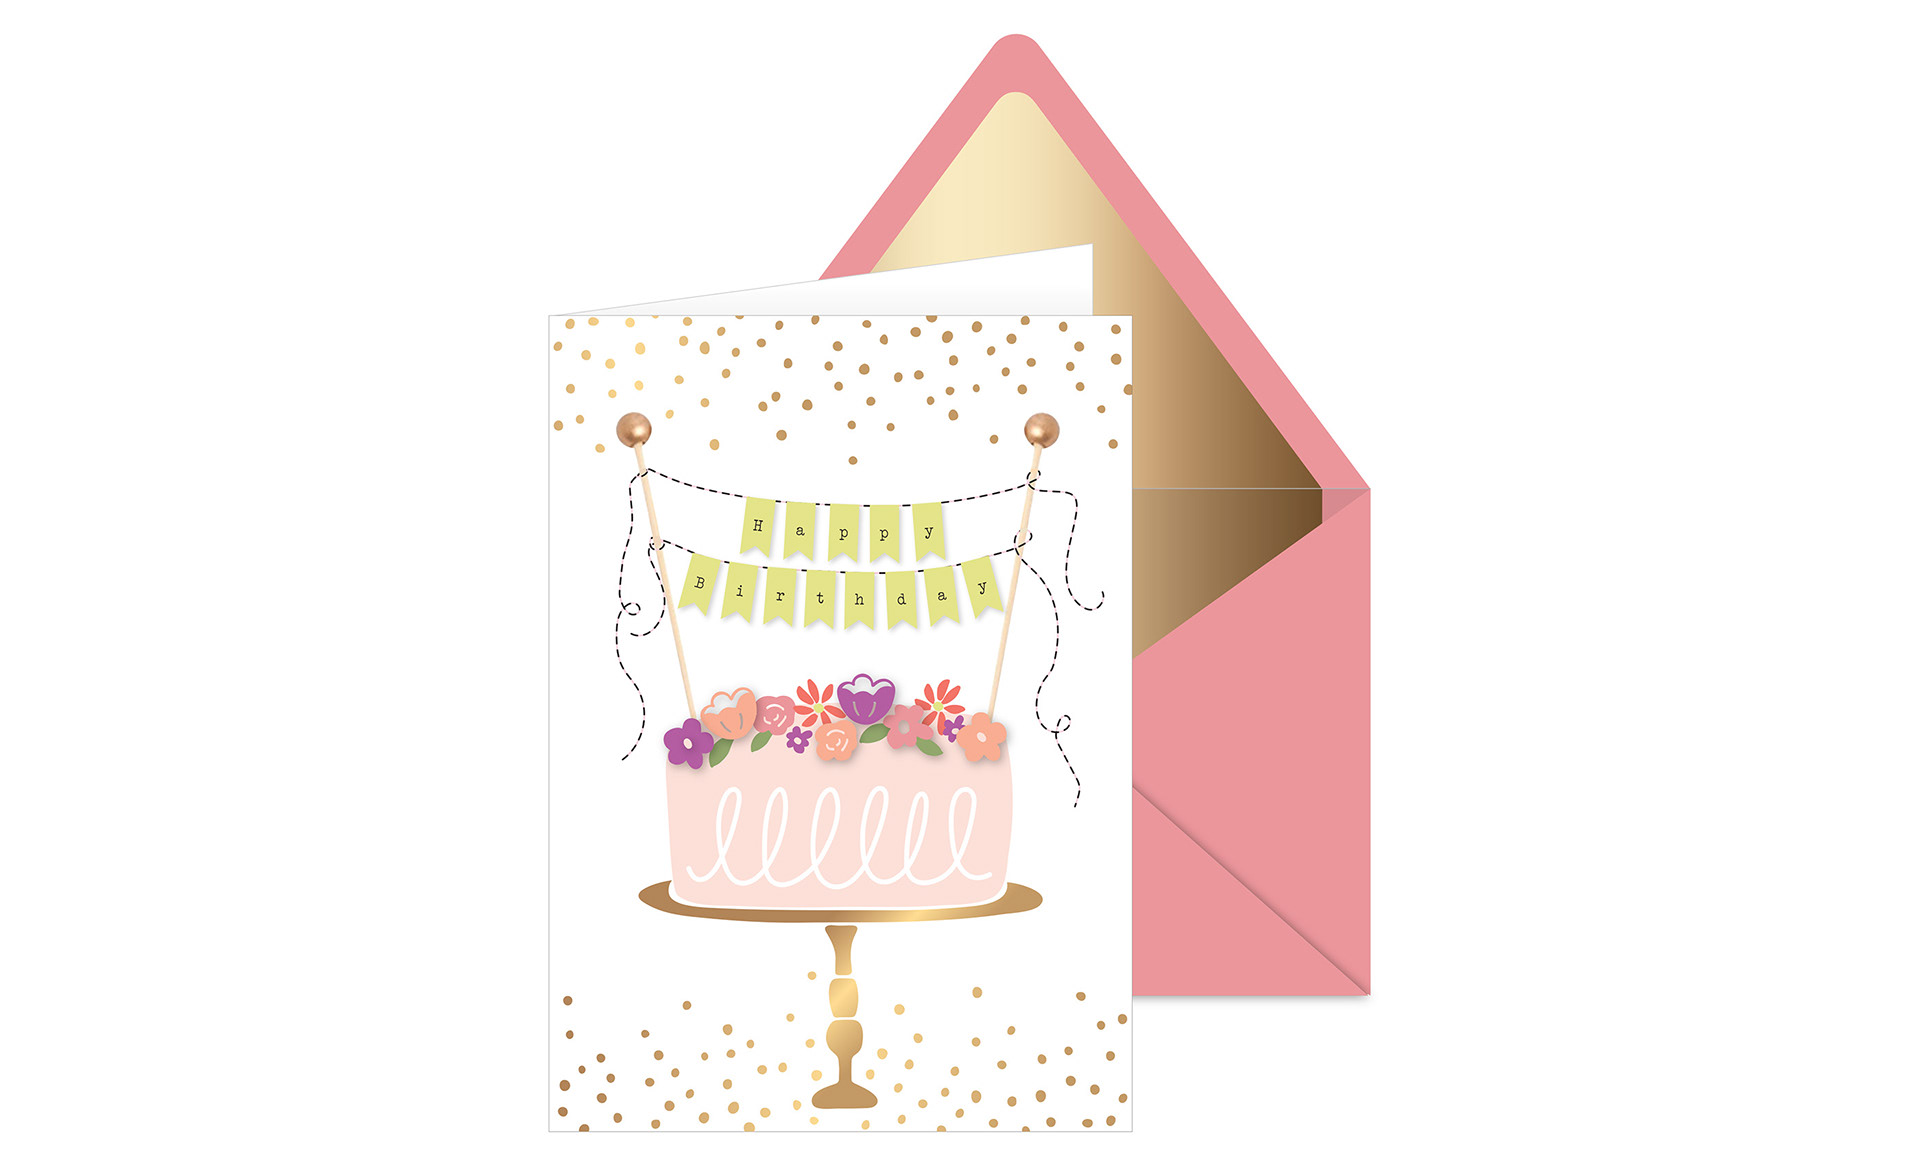 Audre bitton greeting cards greeting cards kristyandbryce Choice Image